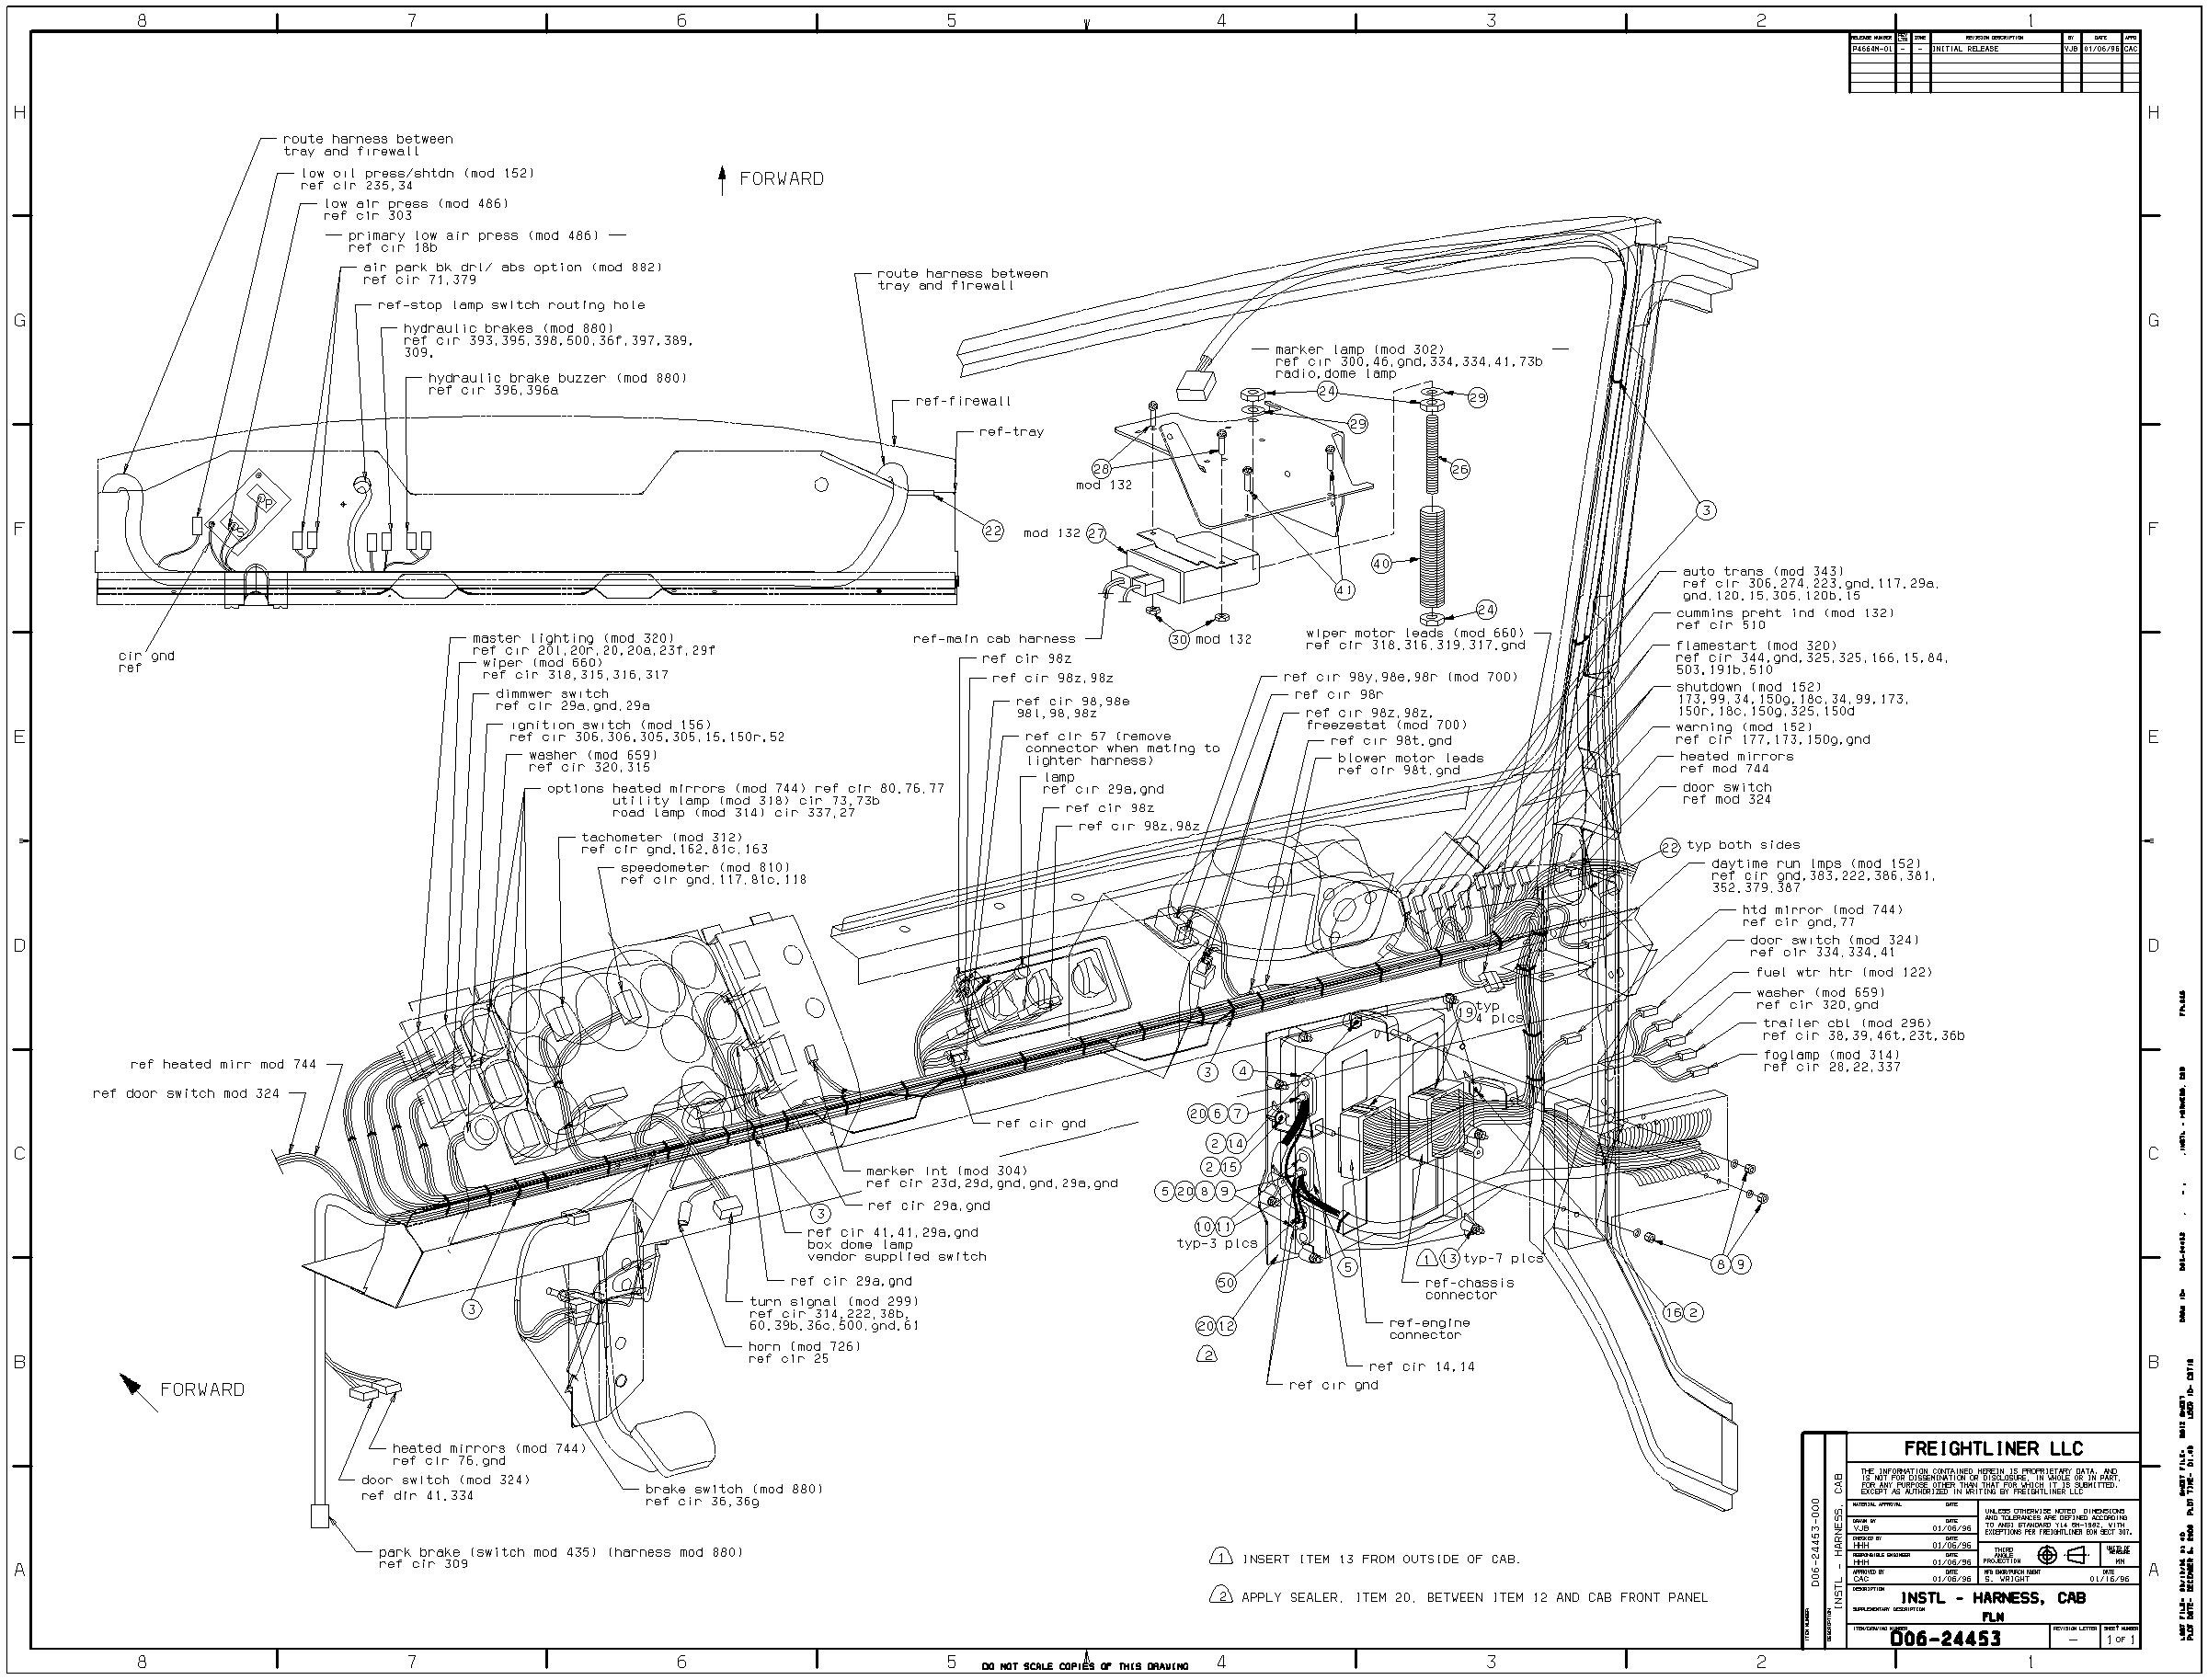 Frieghtliner Argosy Air Schematic I Have 2003 Fl70 Freightliner and I Need A Wiring Diagram for the Instrument Cluster and the Of Frieghtliner Argosy Air Schematic